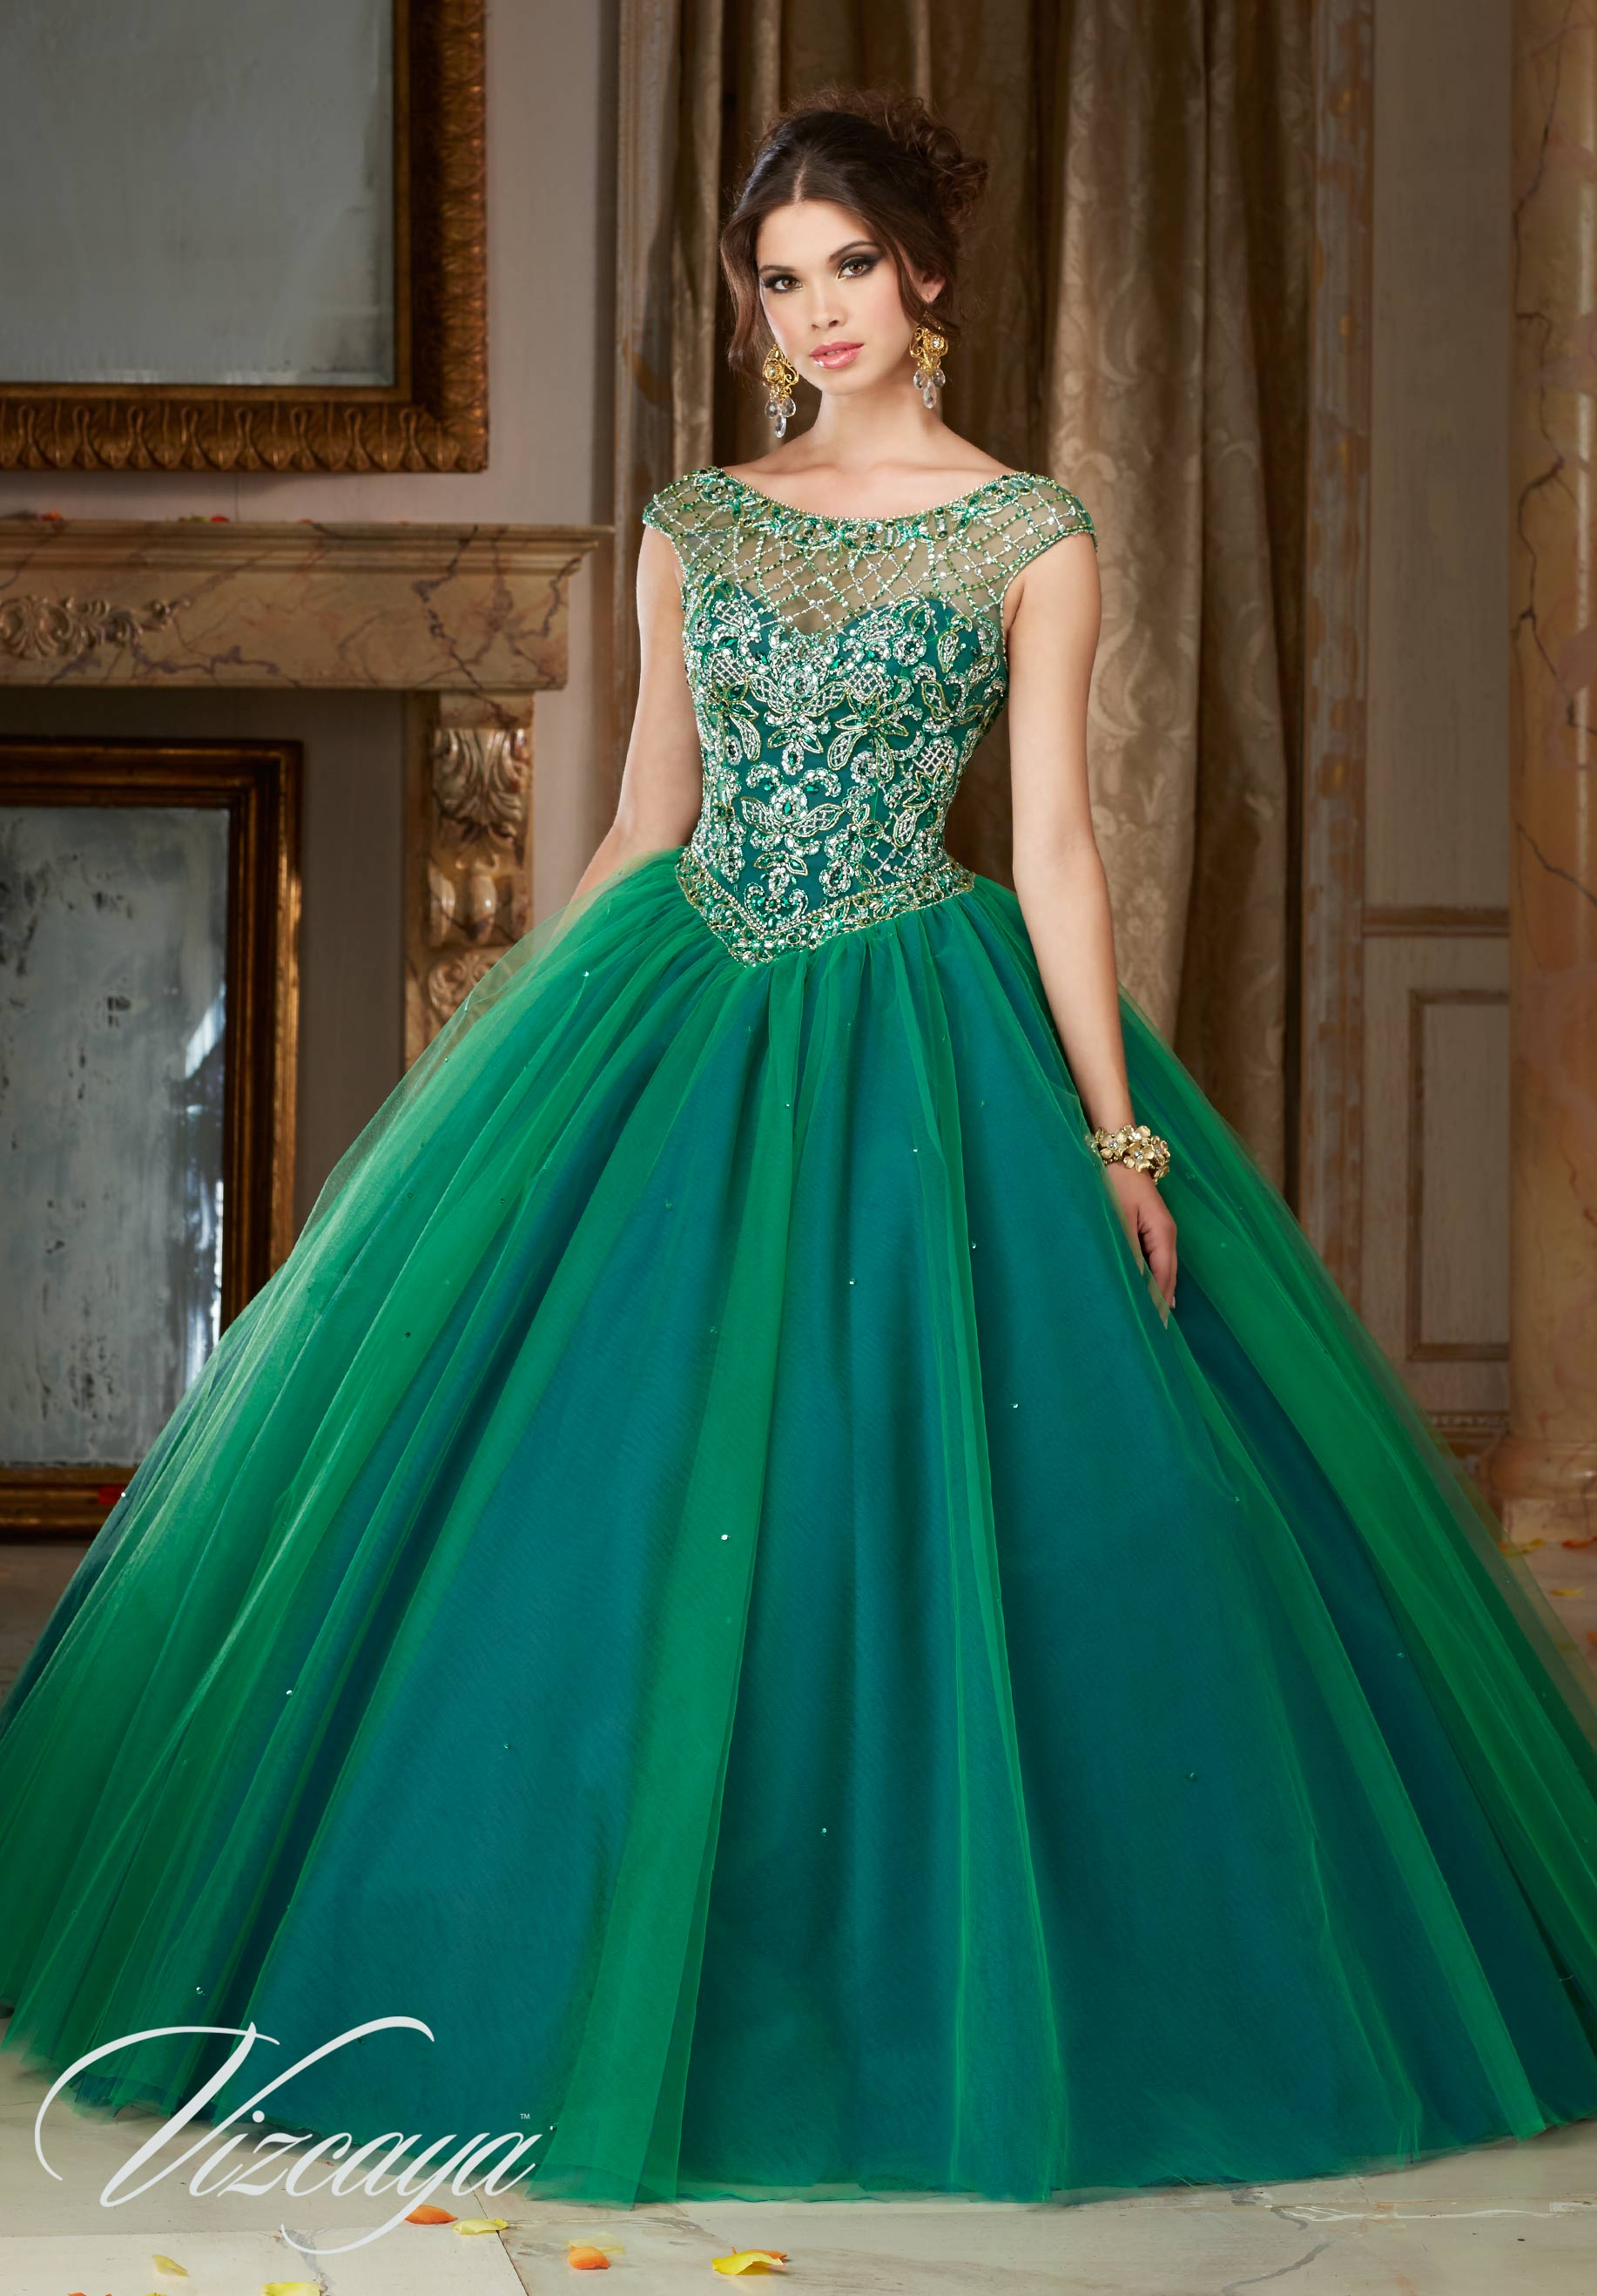 Famous Gold Party Dresses For Women Model - All Wedding Dresses ...